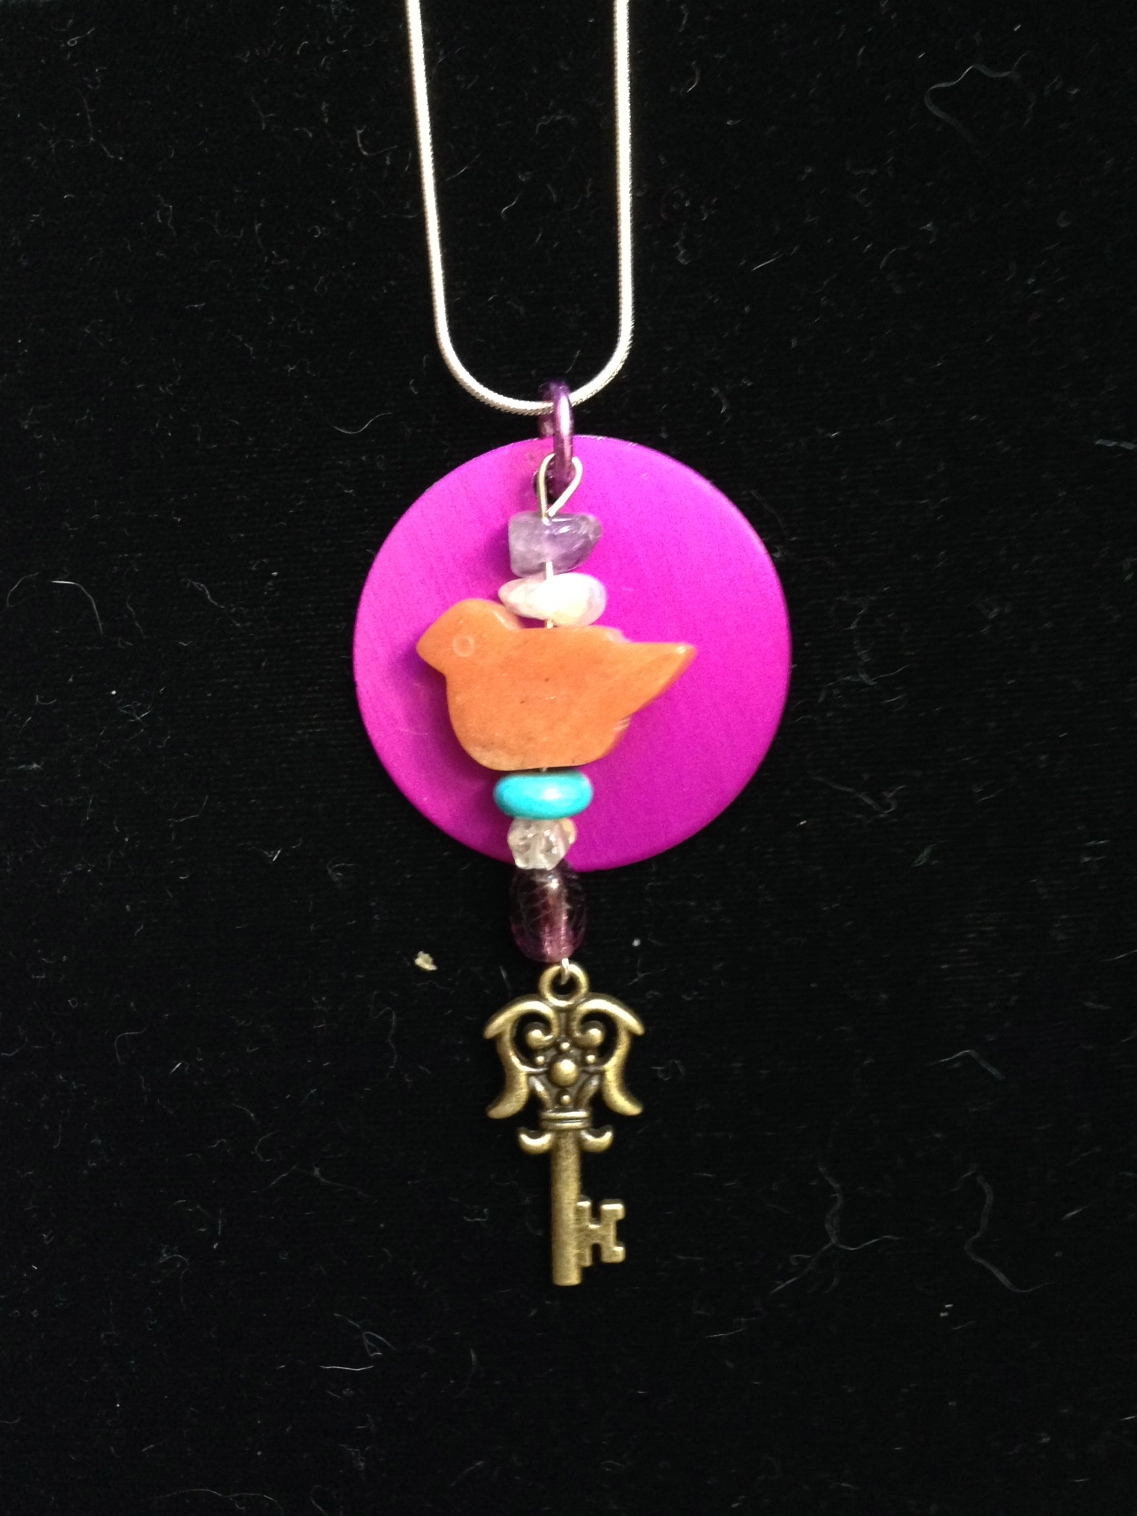 BIRD, KEY, ENERGY DISK NECKLACE